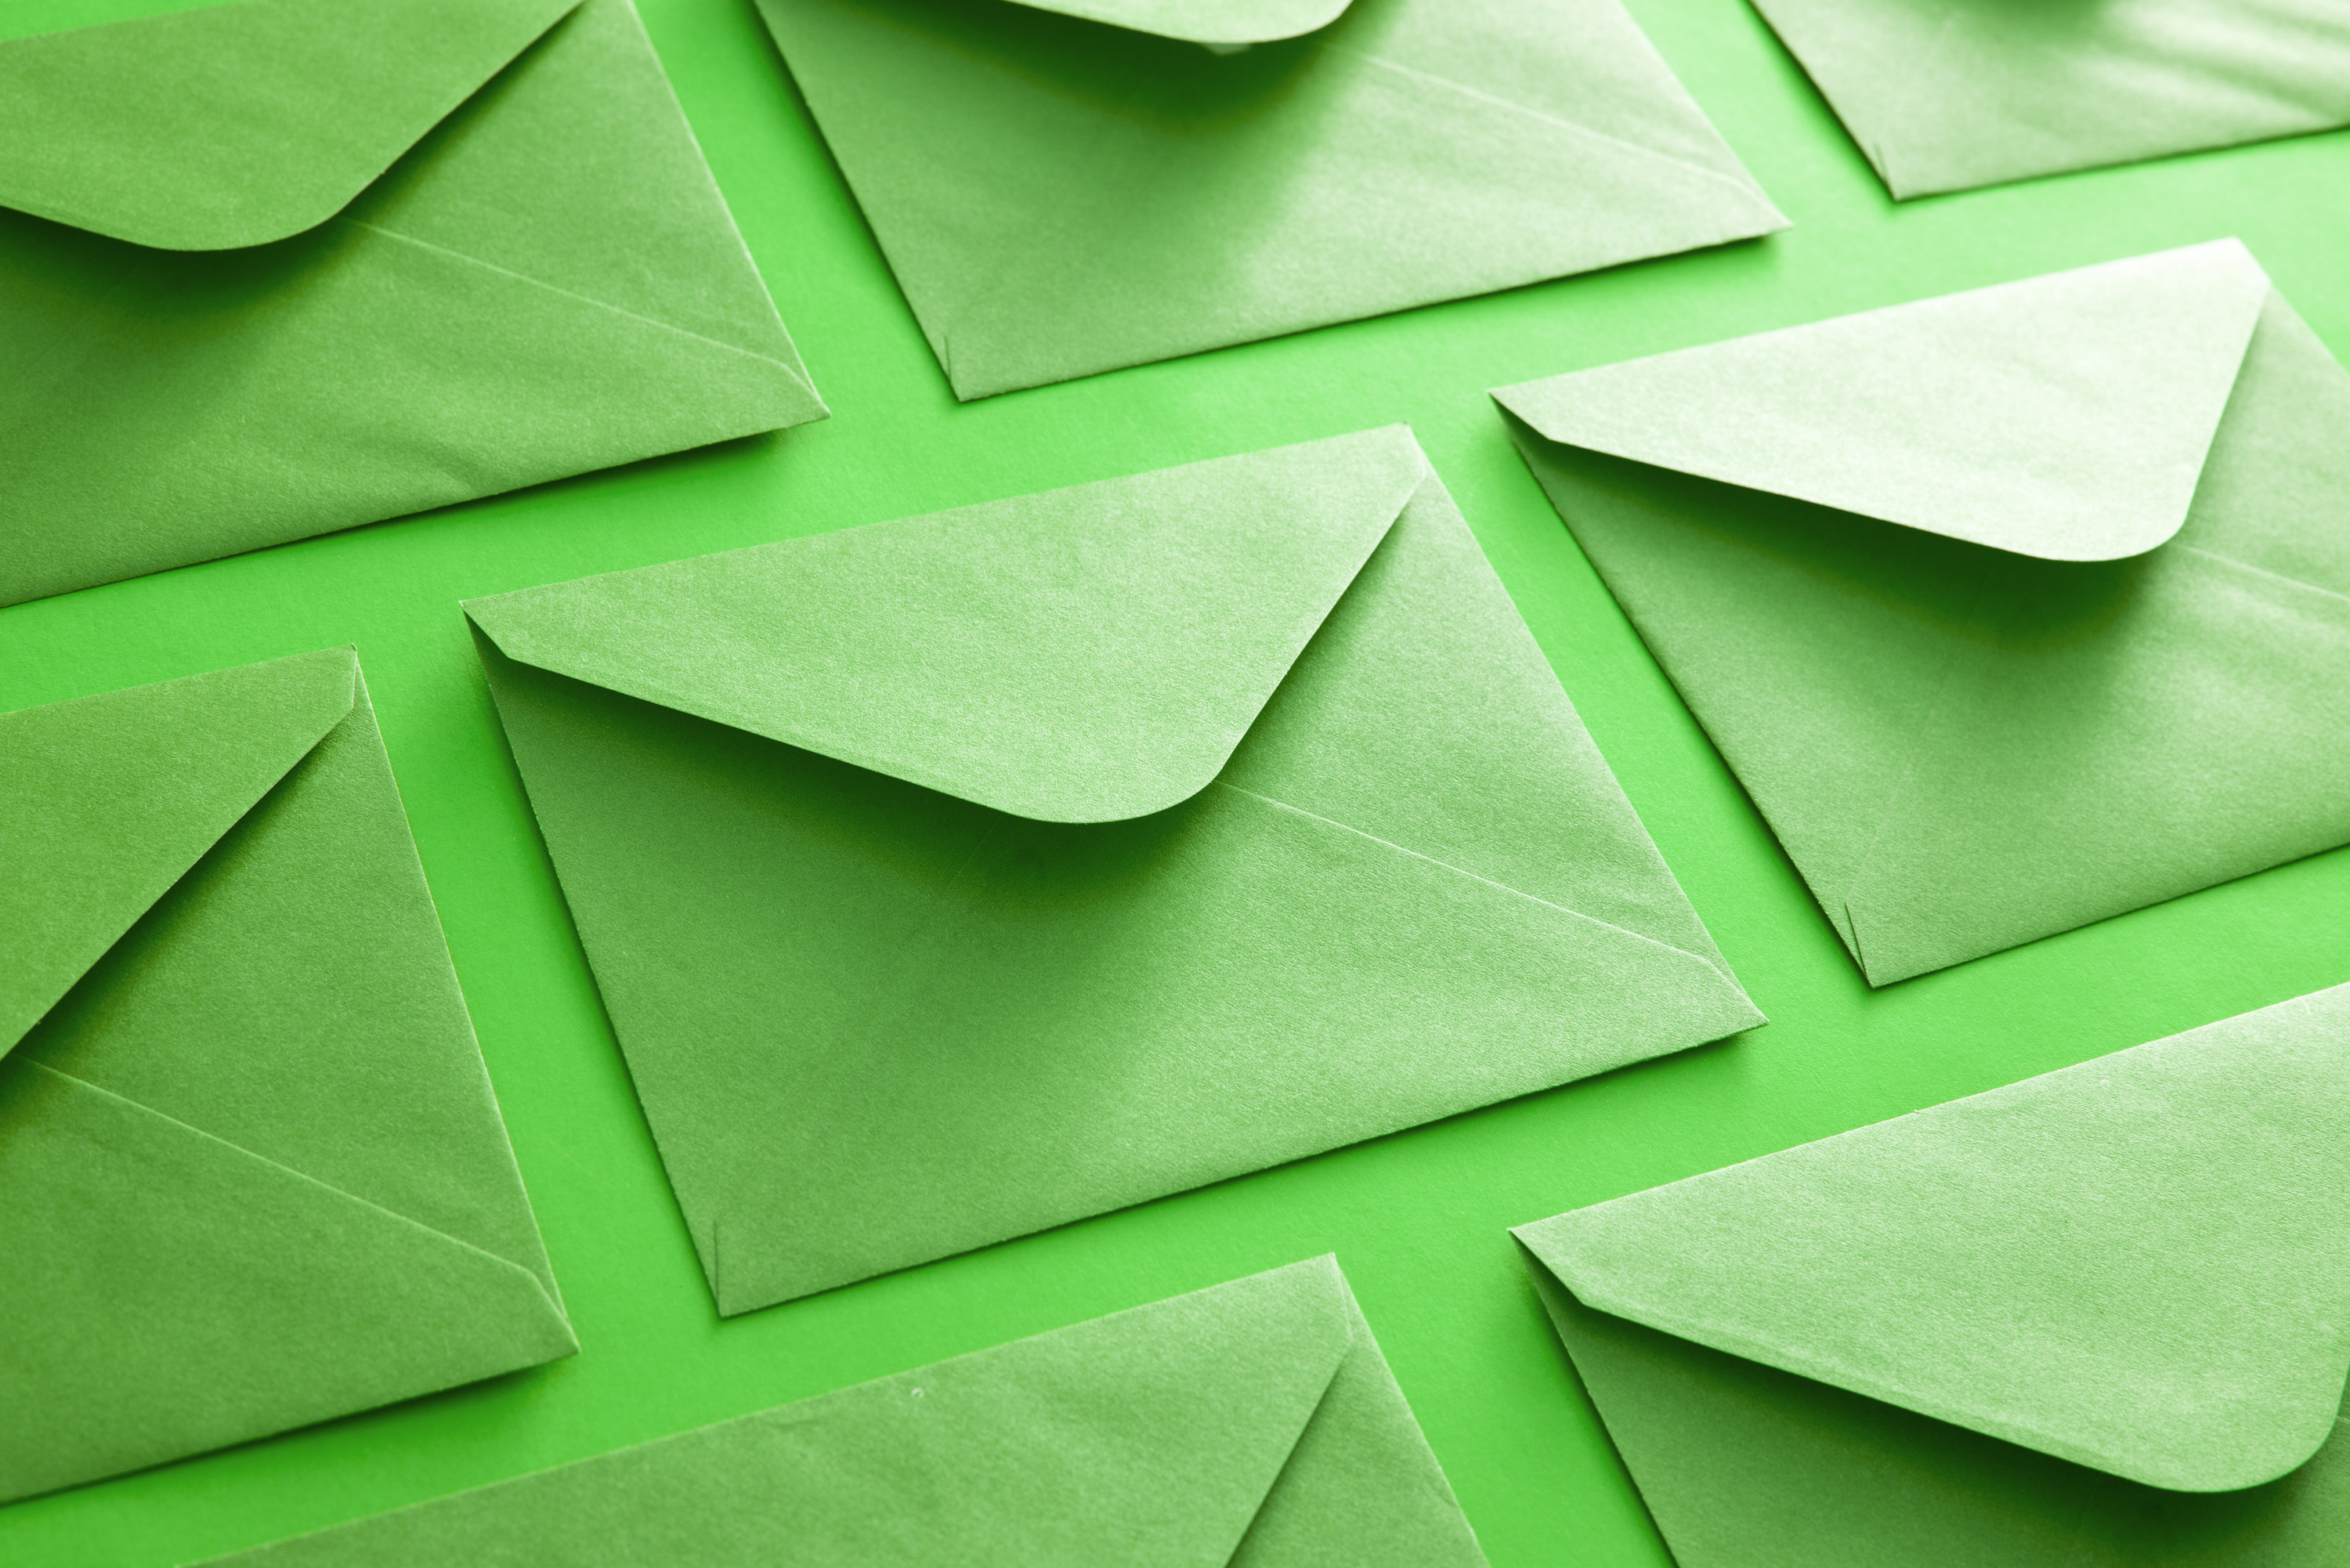 photo of colorful green envelope background